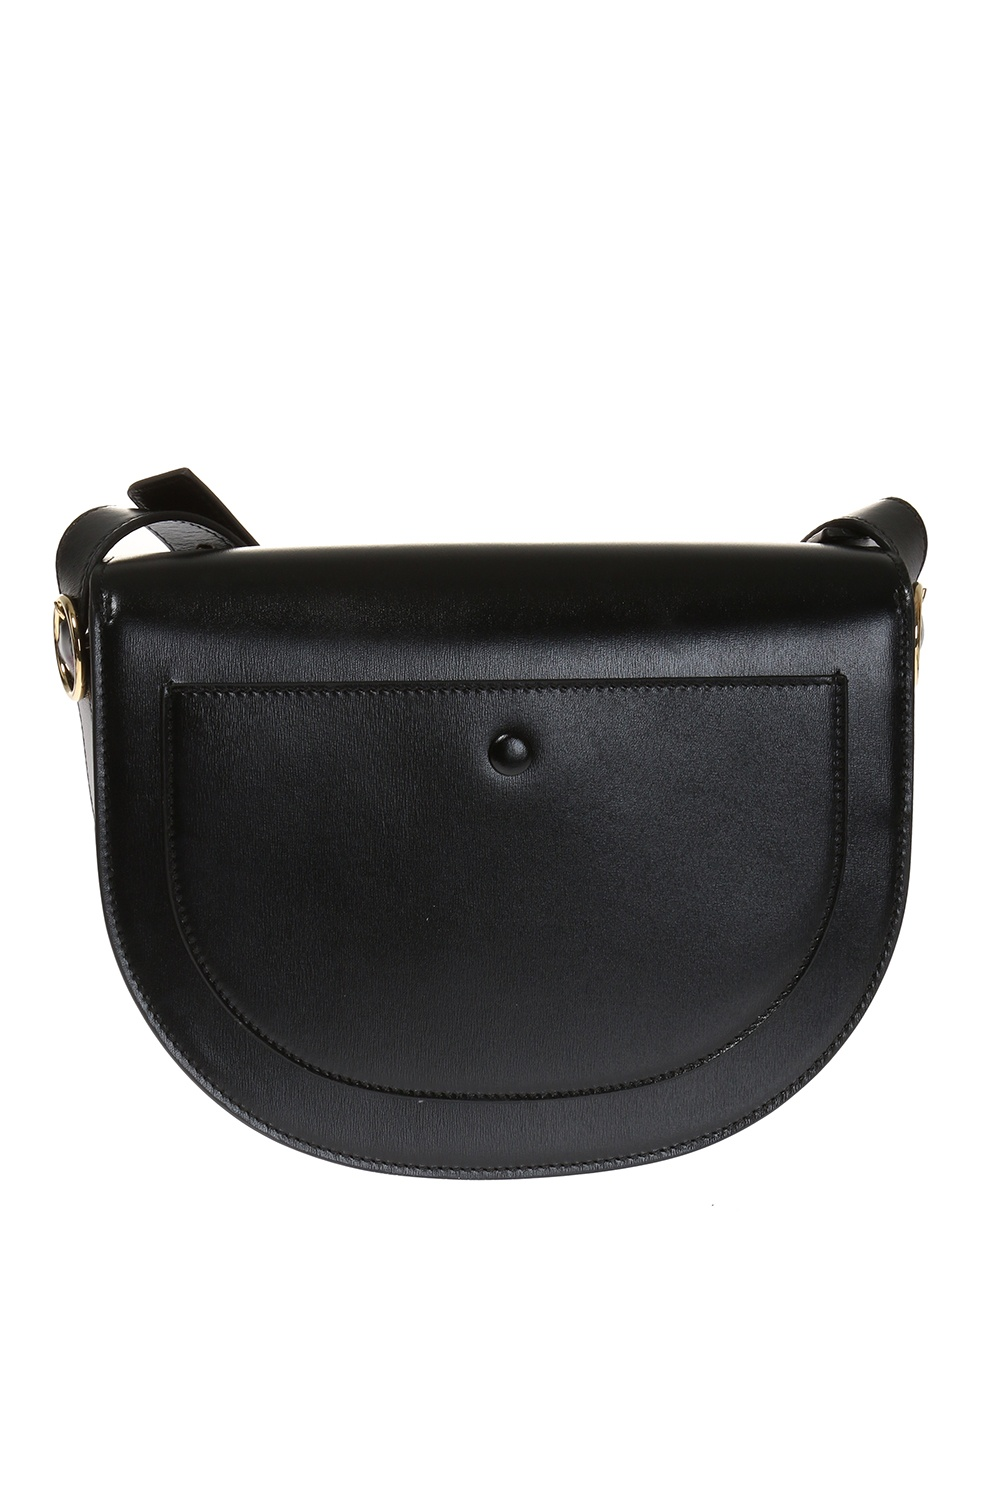 Victoria Beckham 'HALF MOON' shoulder bag